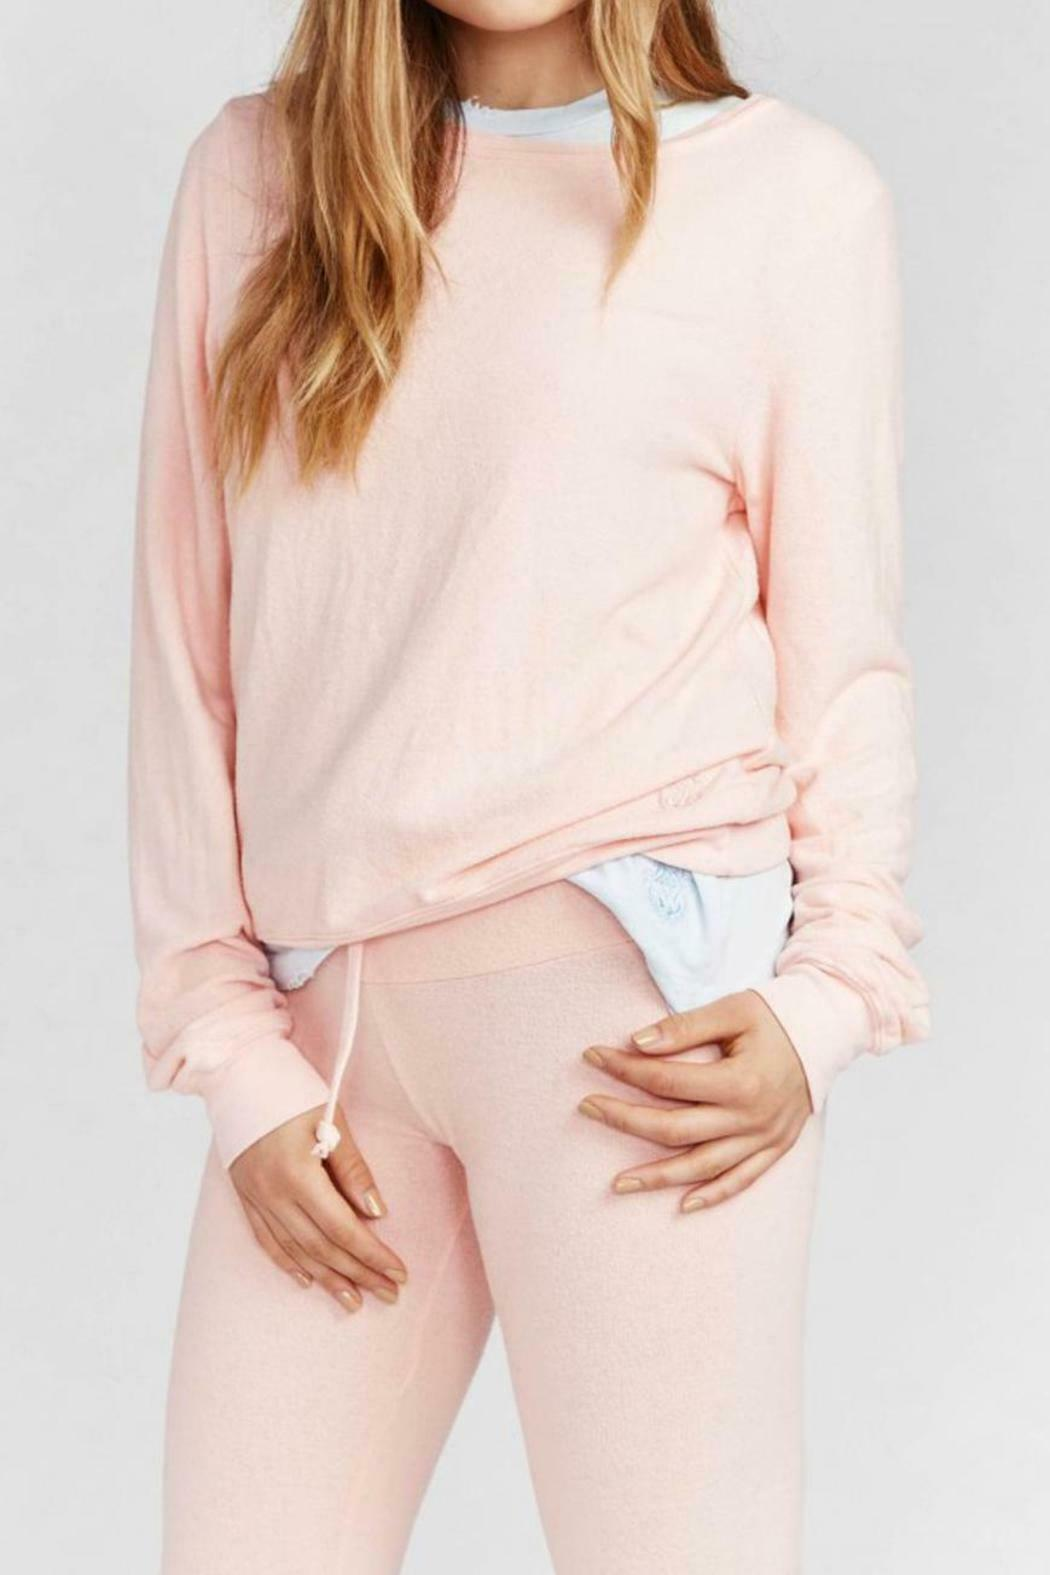 Wildfox Couture Baggy Beach Jumper Sweatshirt. color  Pink. Sz  XS, S